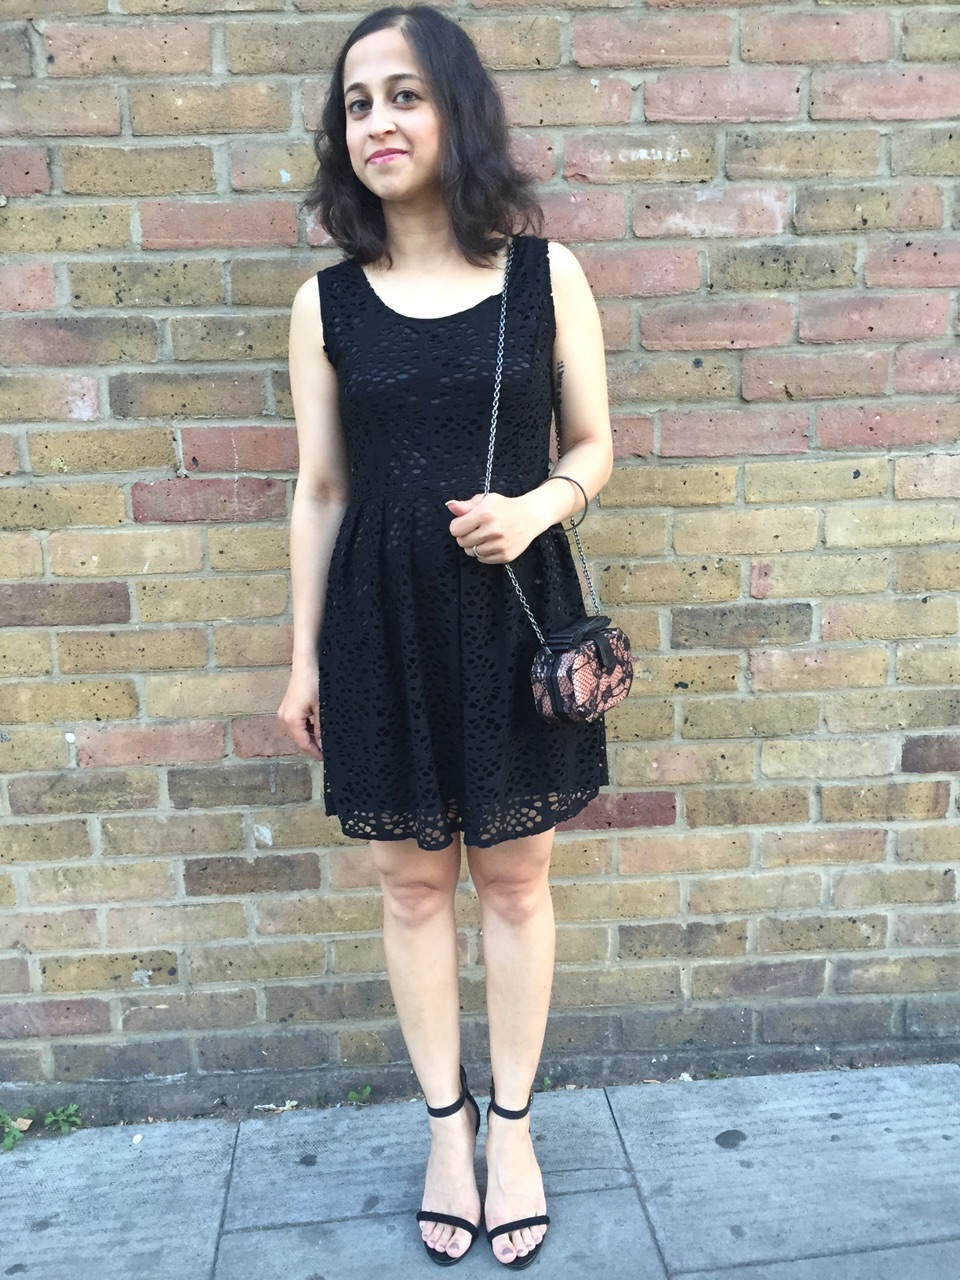 Black dress in summer - Black Summer Dress Lace Bag And Nude Heels